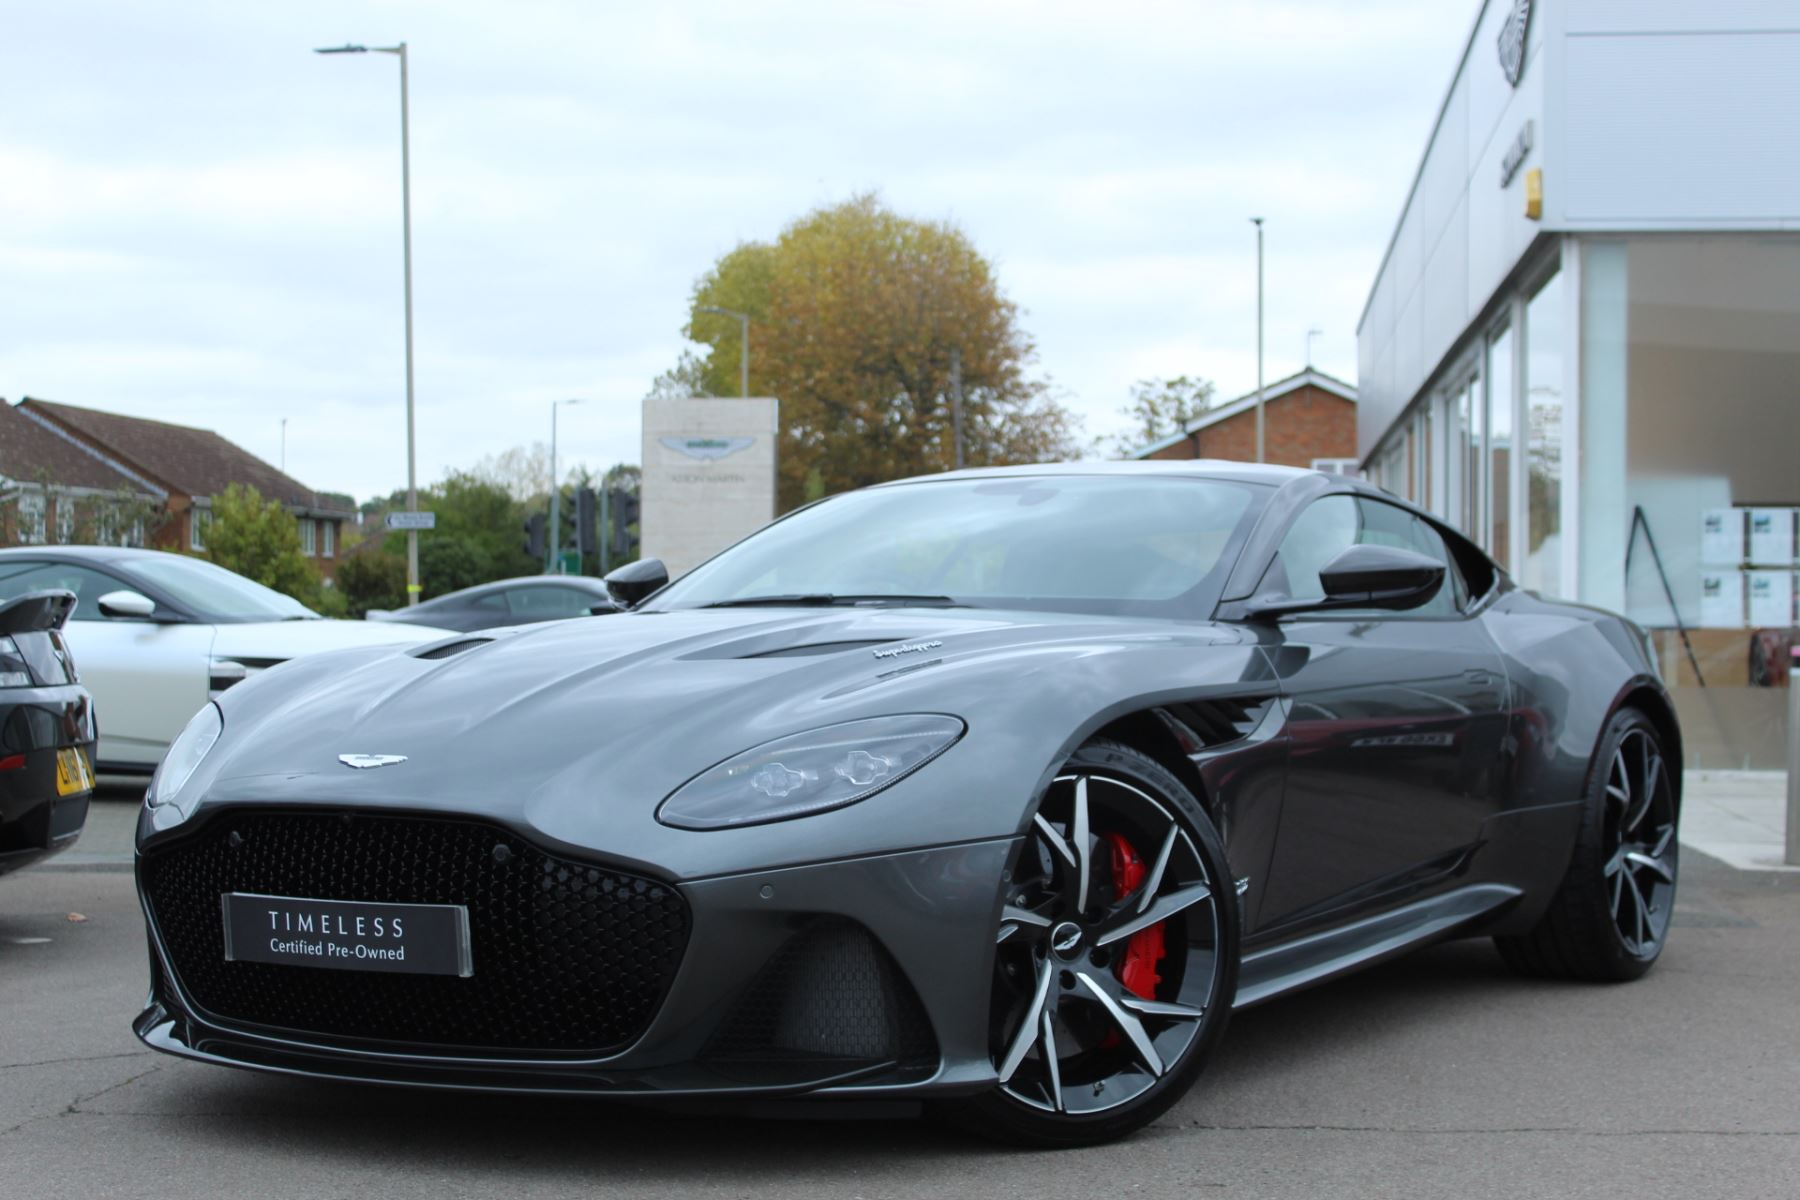 Aston Martin DBS V12 Superleggera 2dr Touchtronic 5.2 Automatic Coupe (2019) image